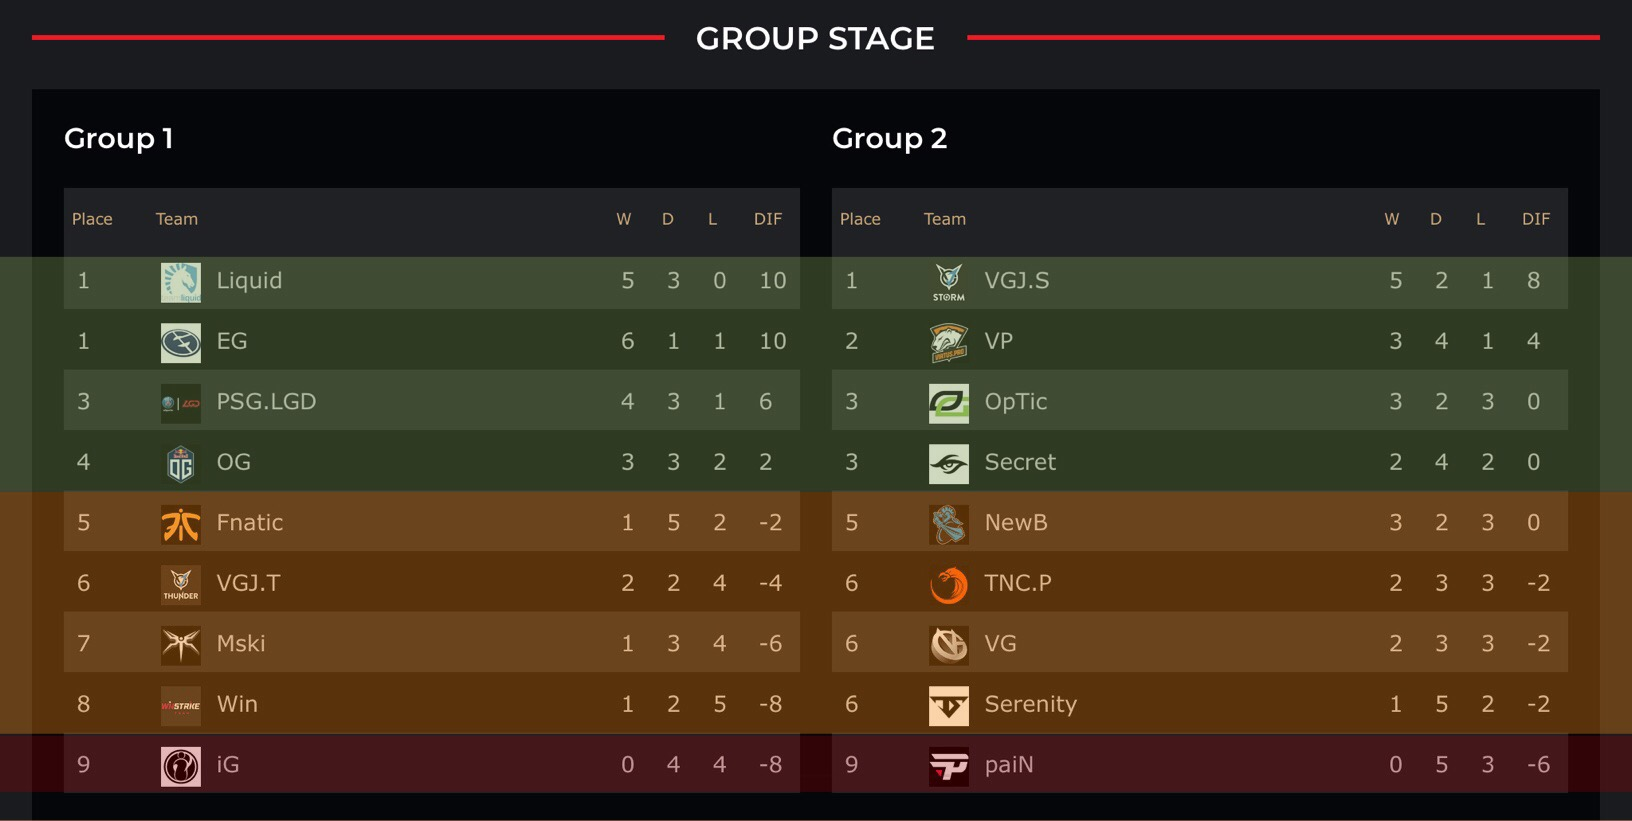 180819-TI8-Groupstage-table